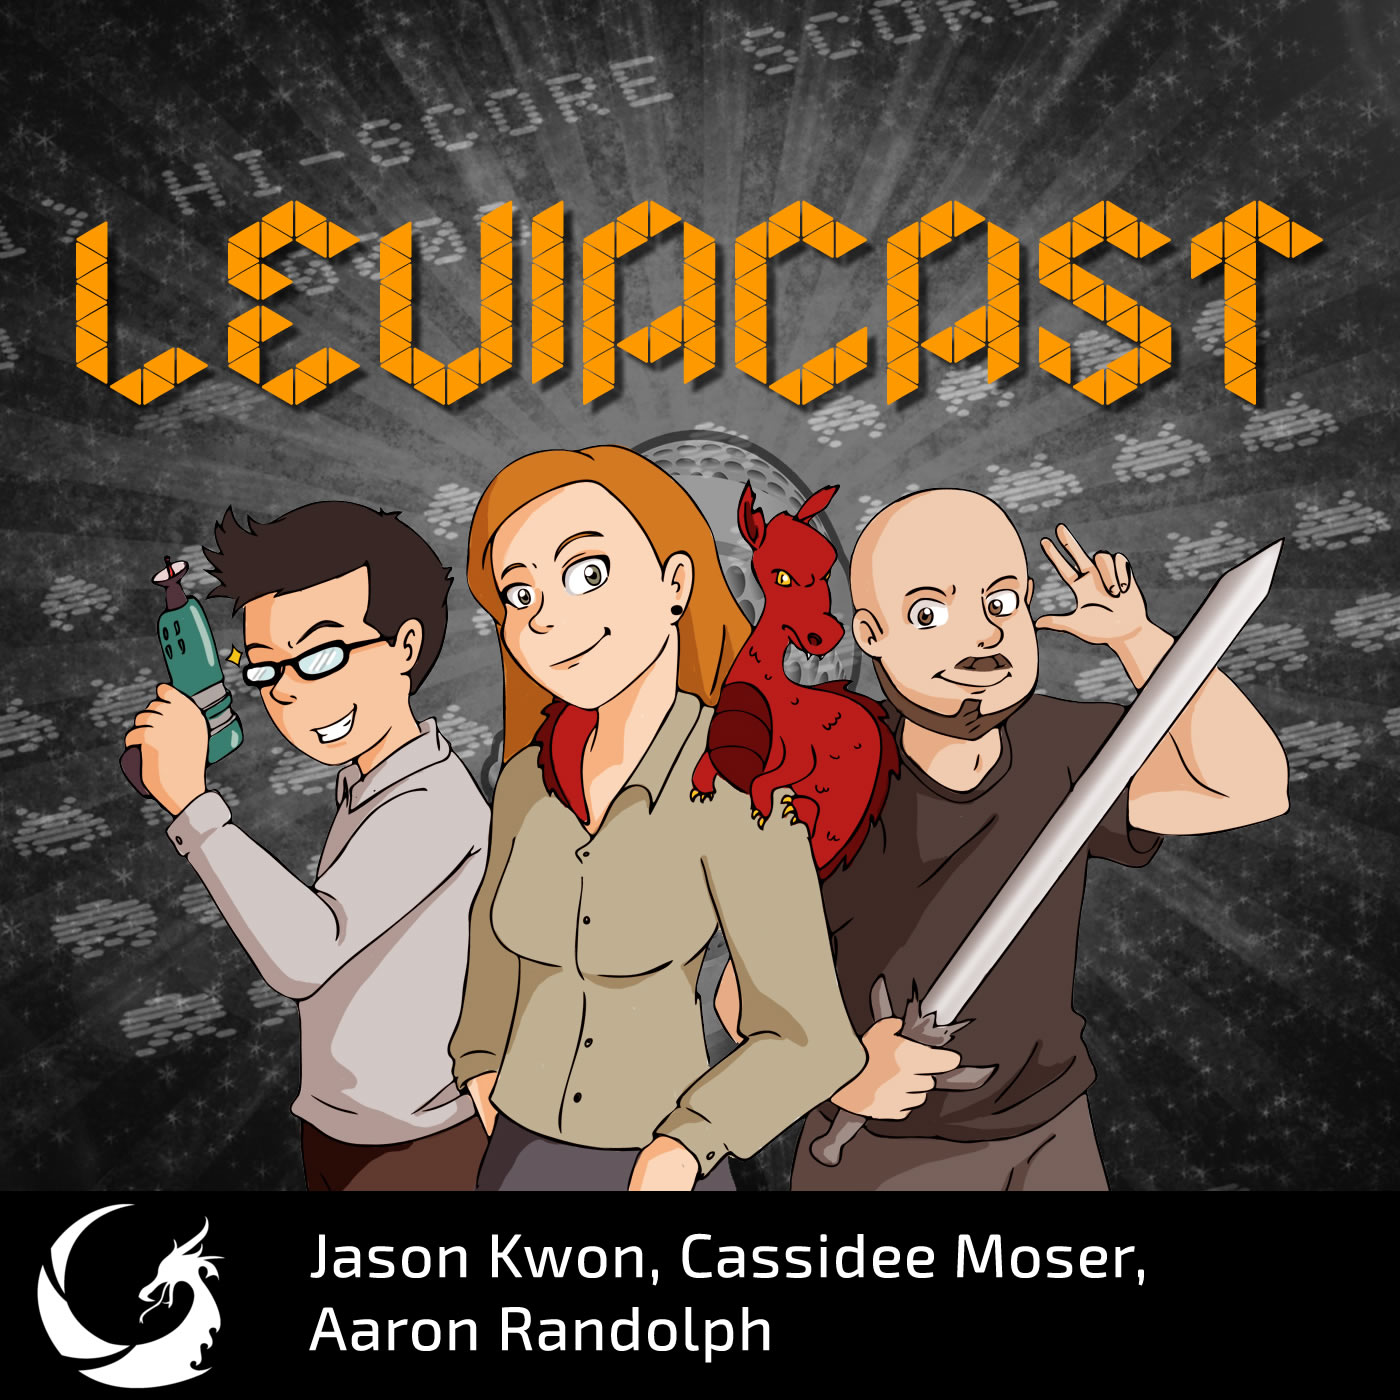 Leviacast Ep. 103: The E3 Megashow (Feat. Mike Futter)